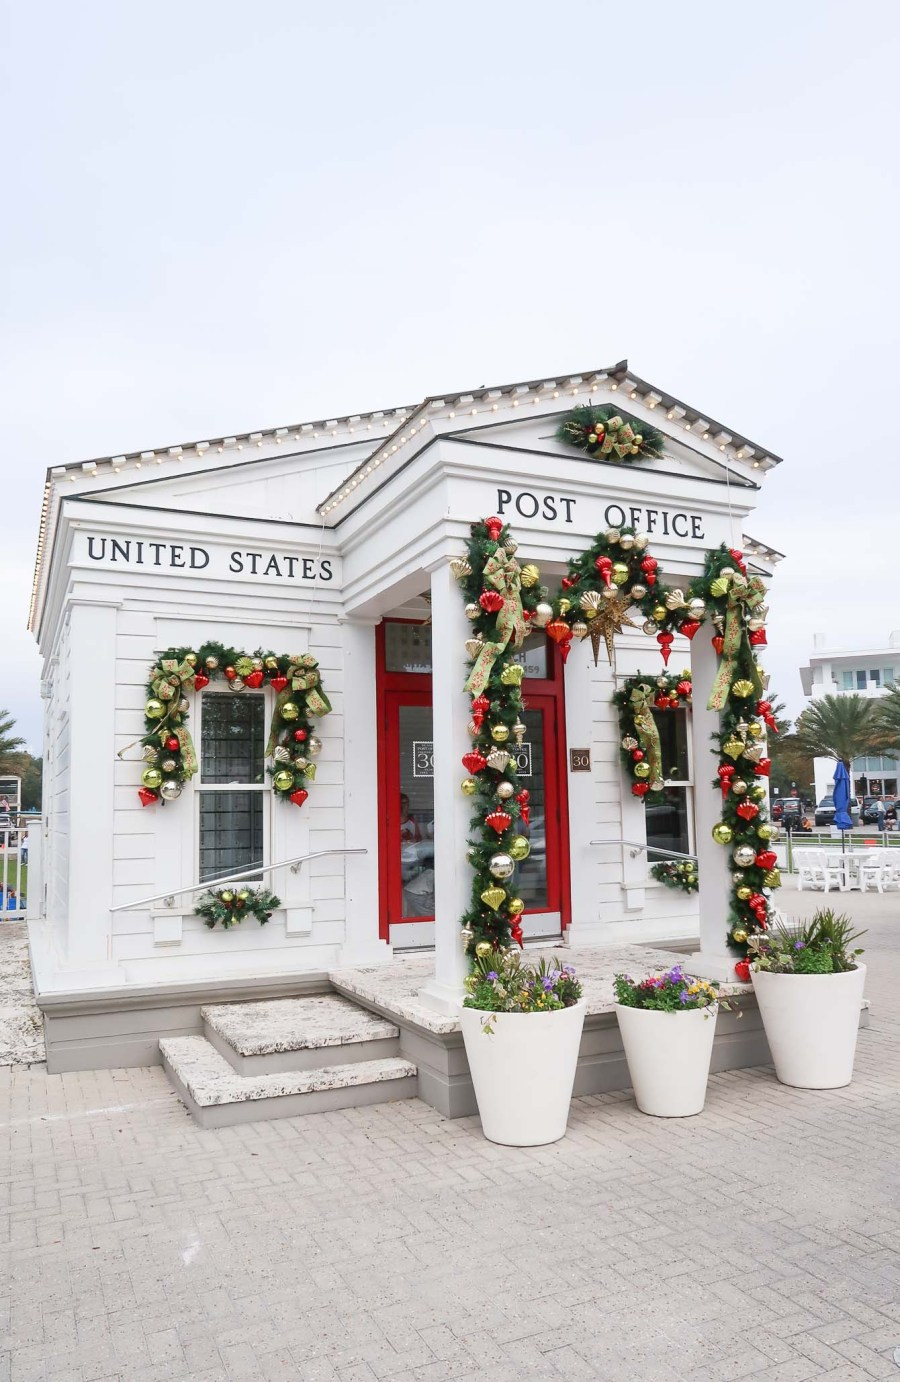 Seaside Florida 30A Post Office Christmas Decorations